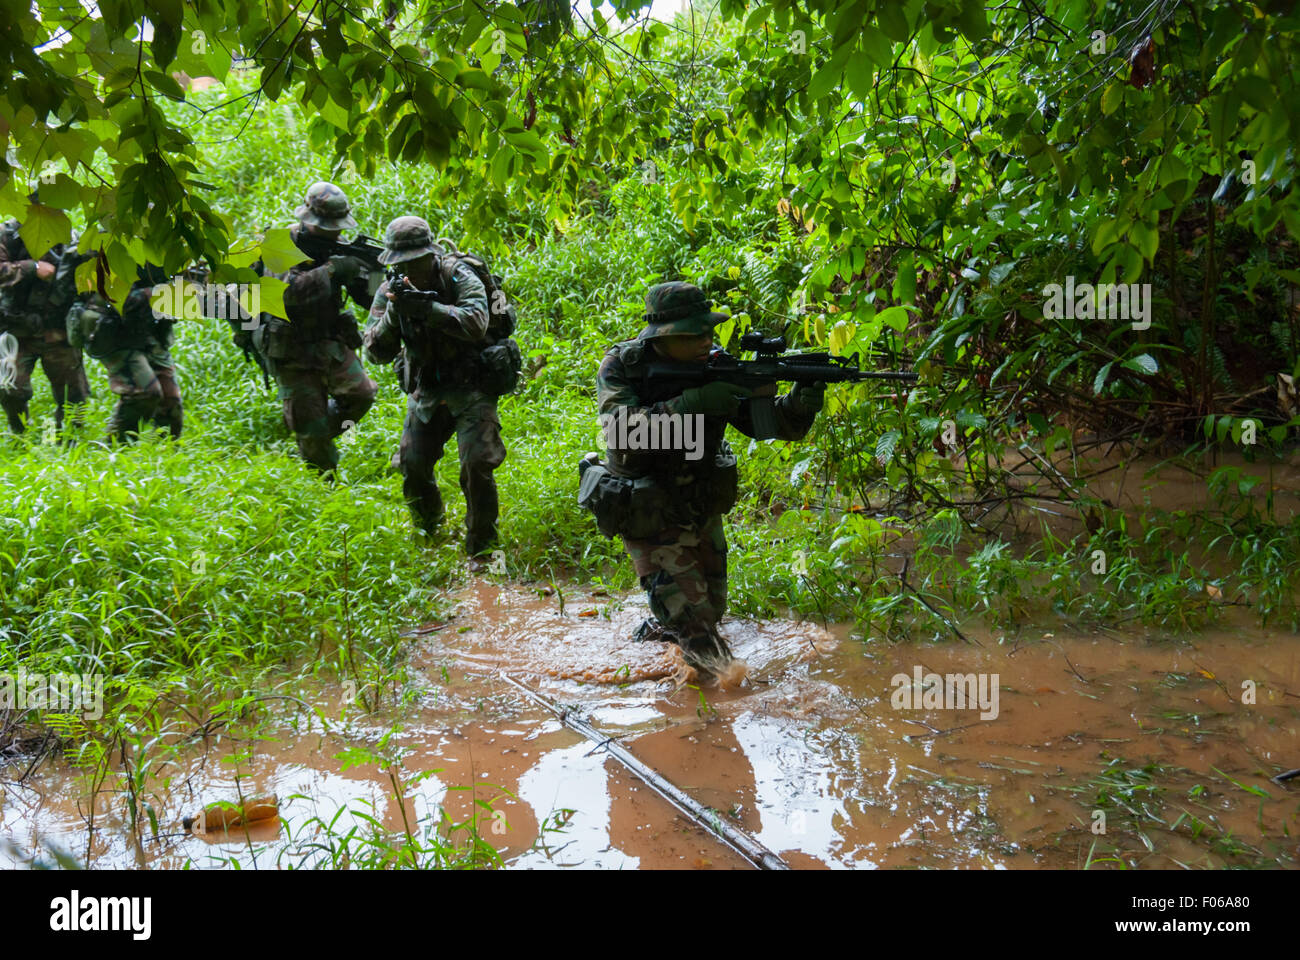 Men walking in swamp area during a recreational, military reenactment play. - Stock Image